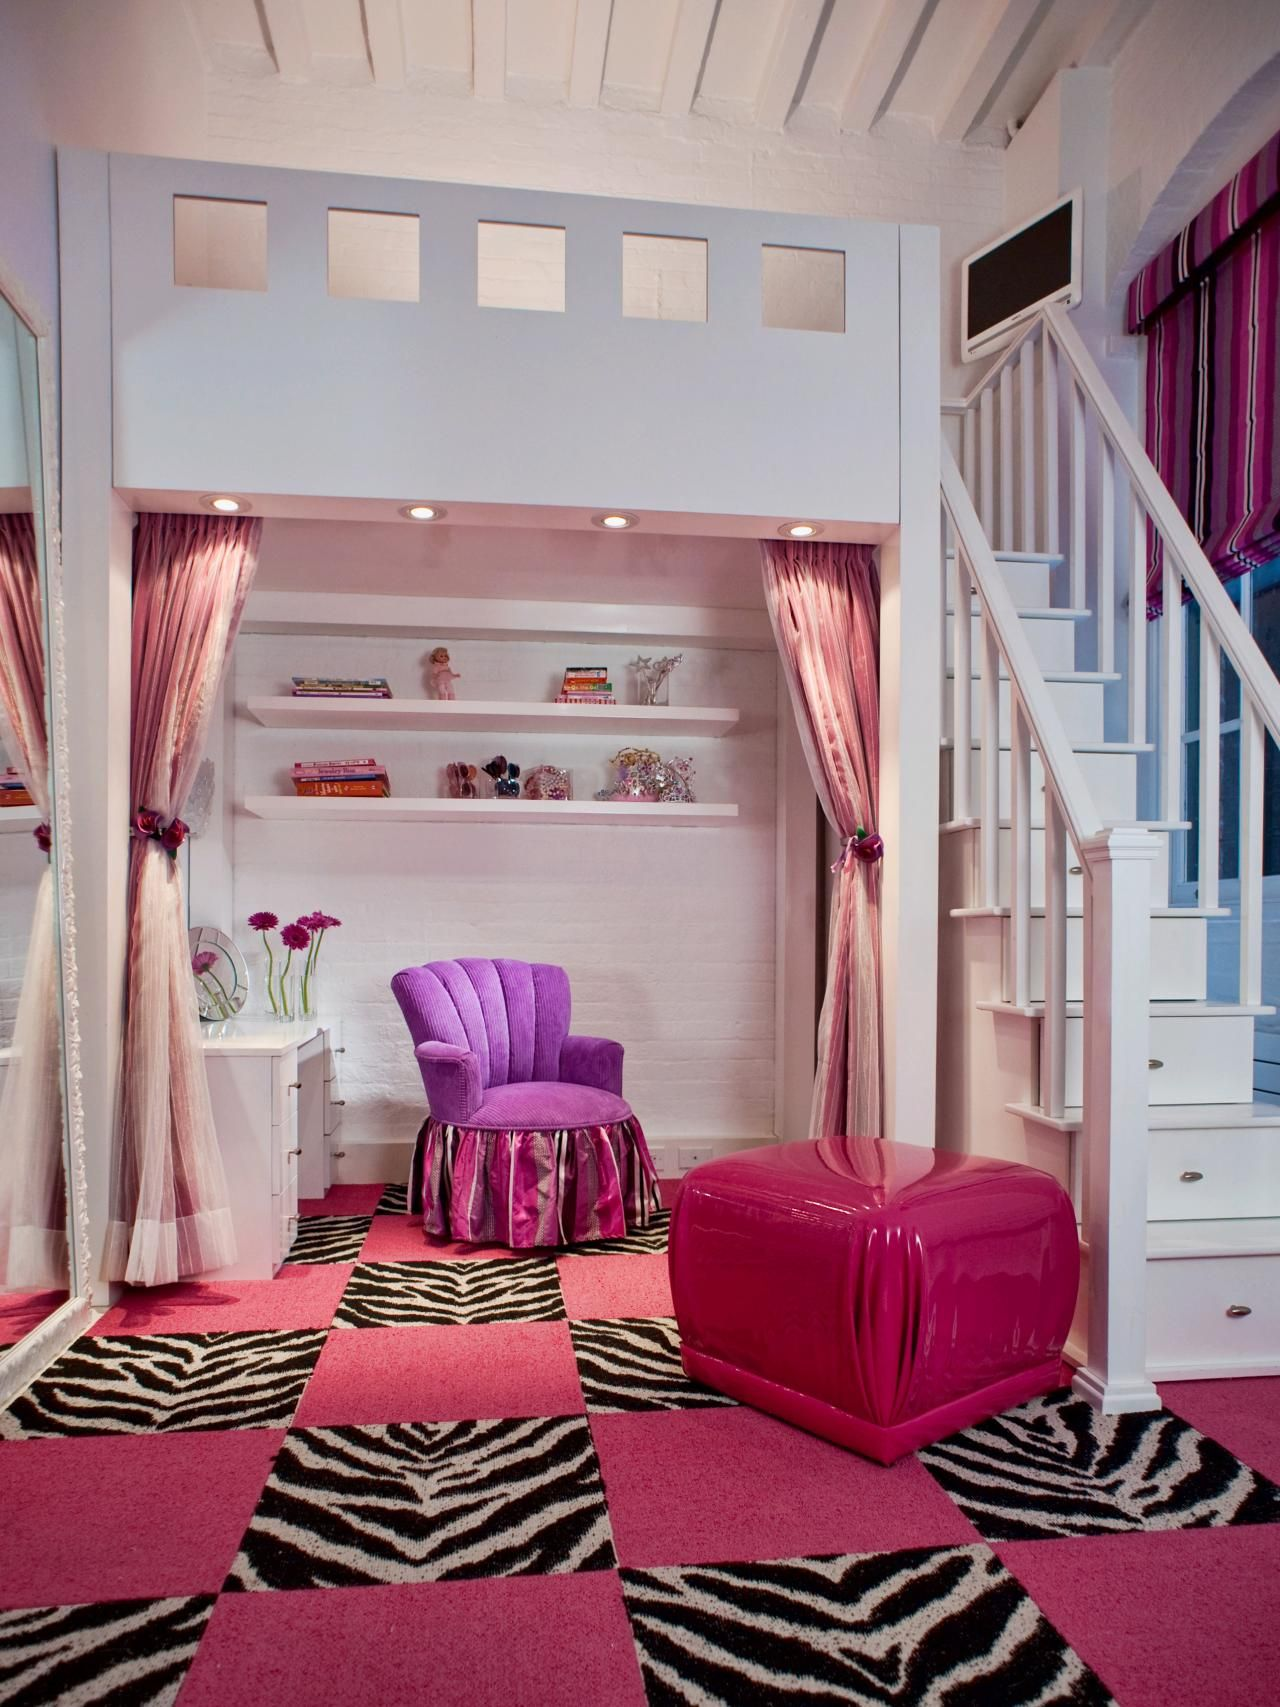 Stylish Kids Bunk Beds Kids Room Ideas For Playroom Bedroom